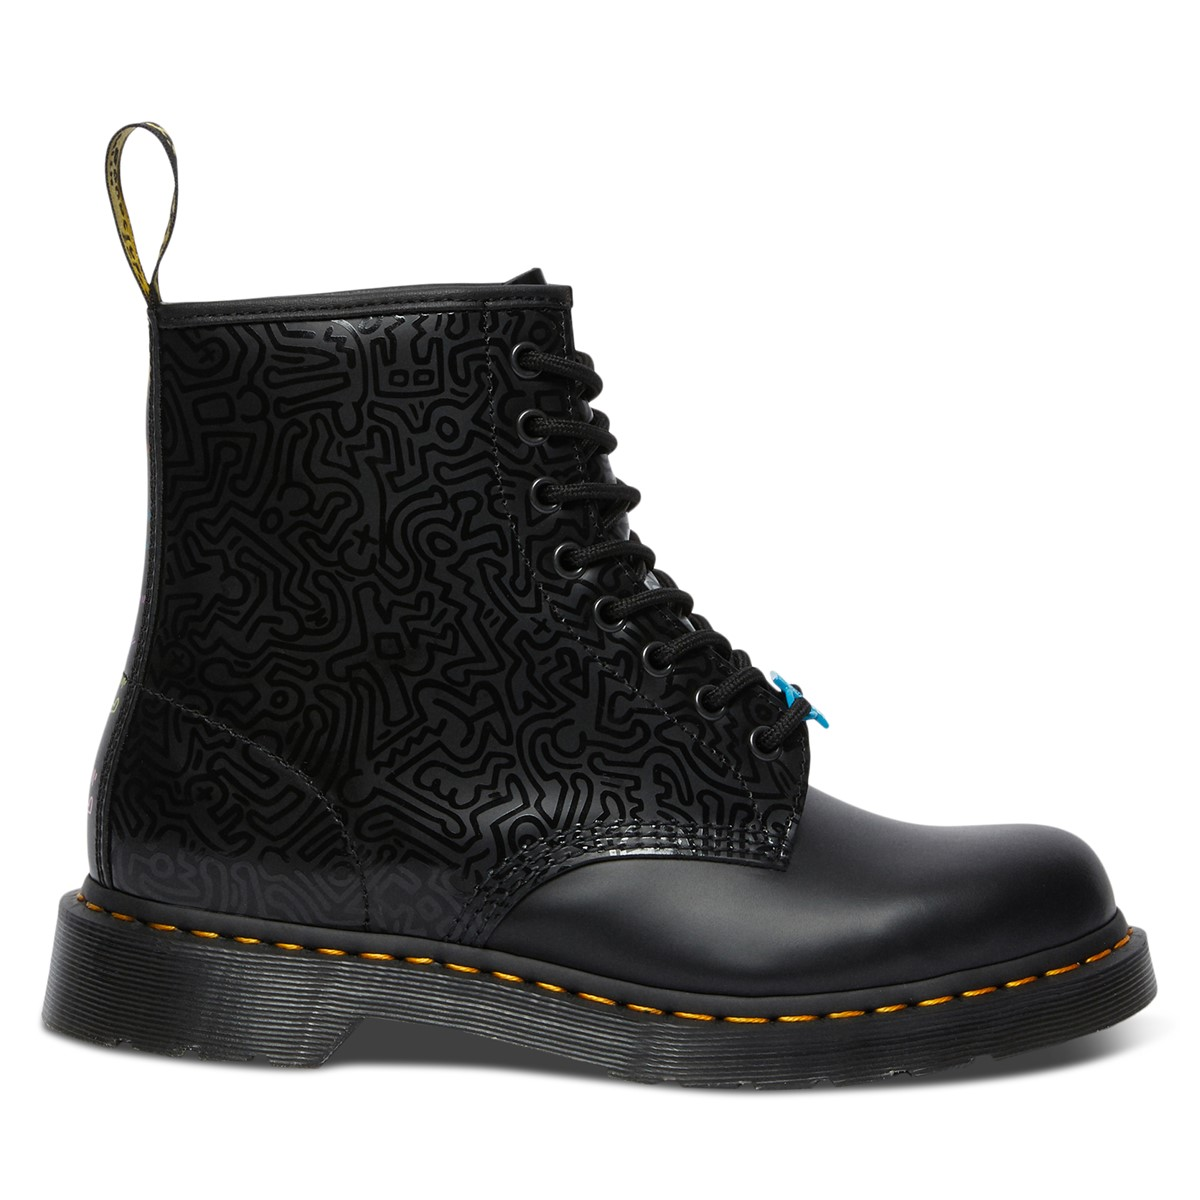 Keith Haring x Dr. Martens 1460 Boots in Black